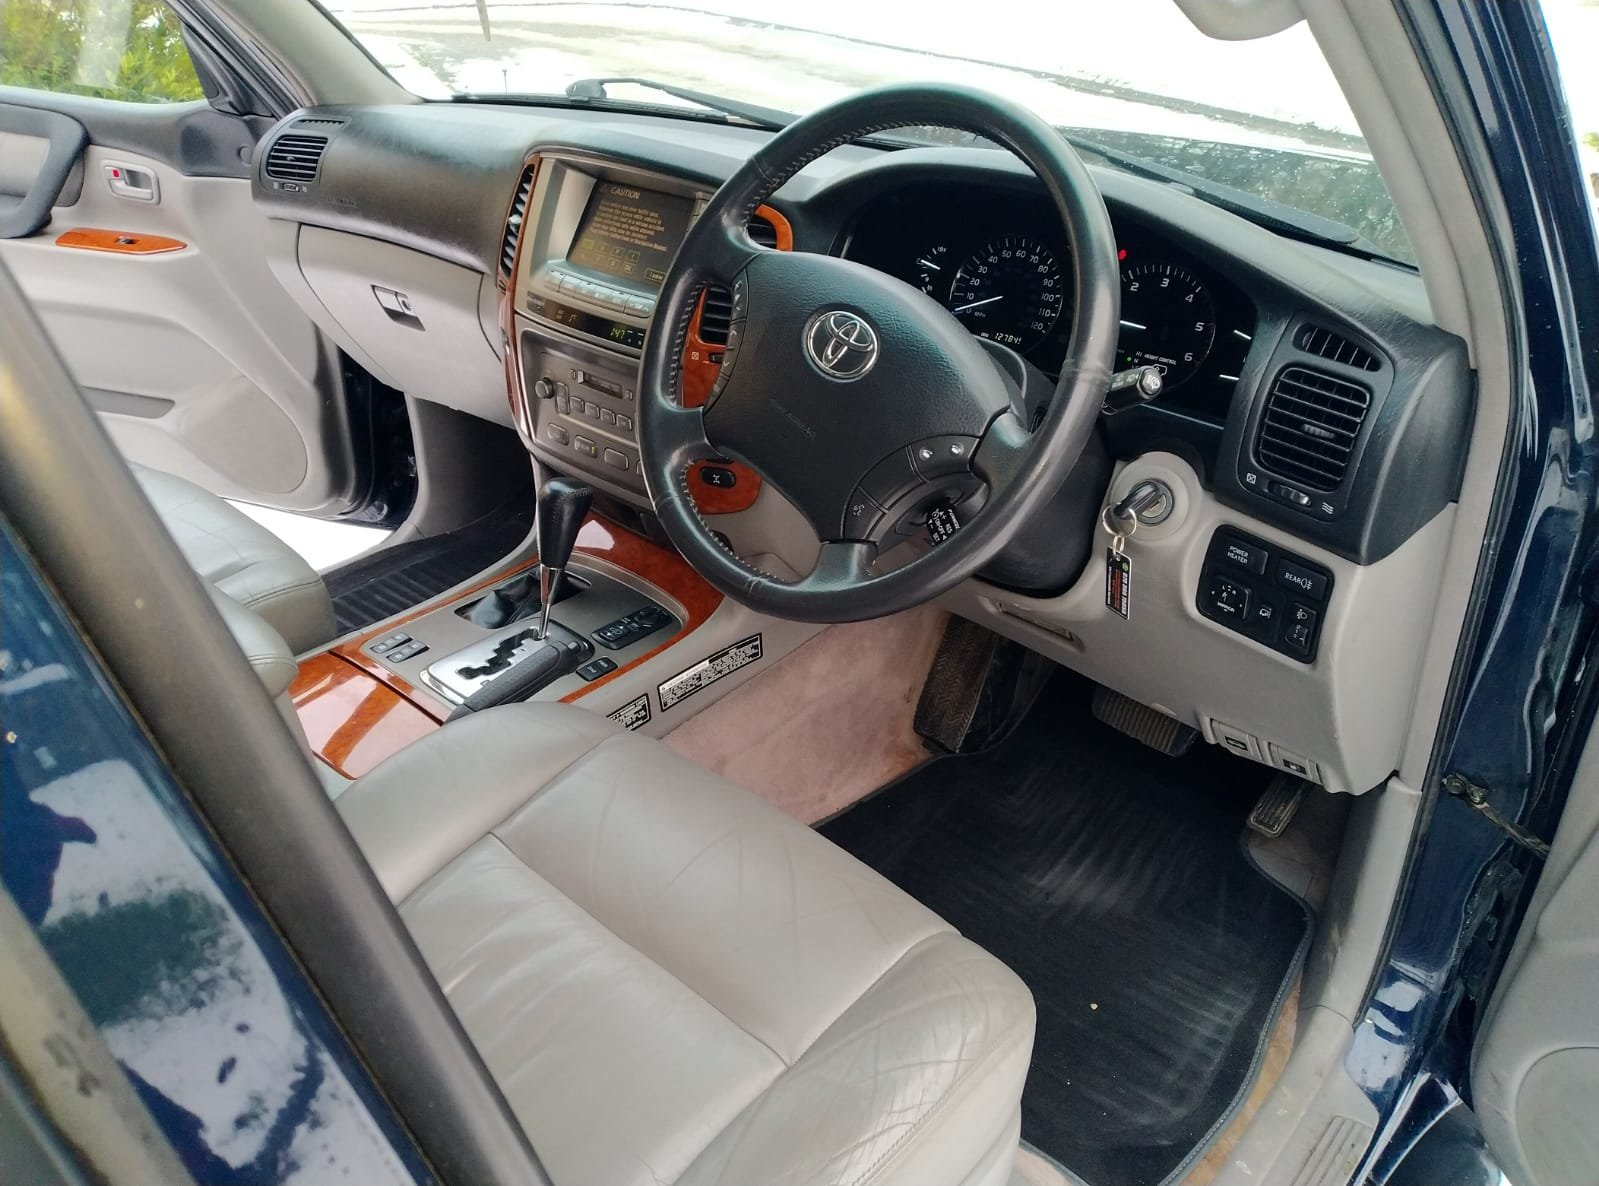 2004 Toyota Land cruiser Amazon TD 4.2 Auto For Sale (picture 7 of 12)